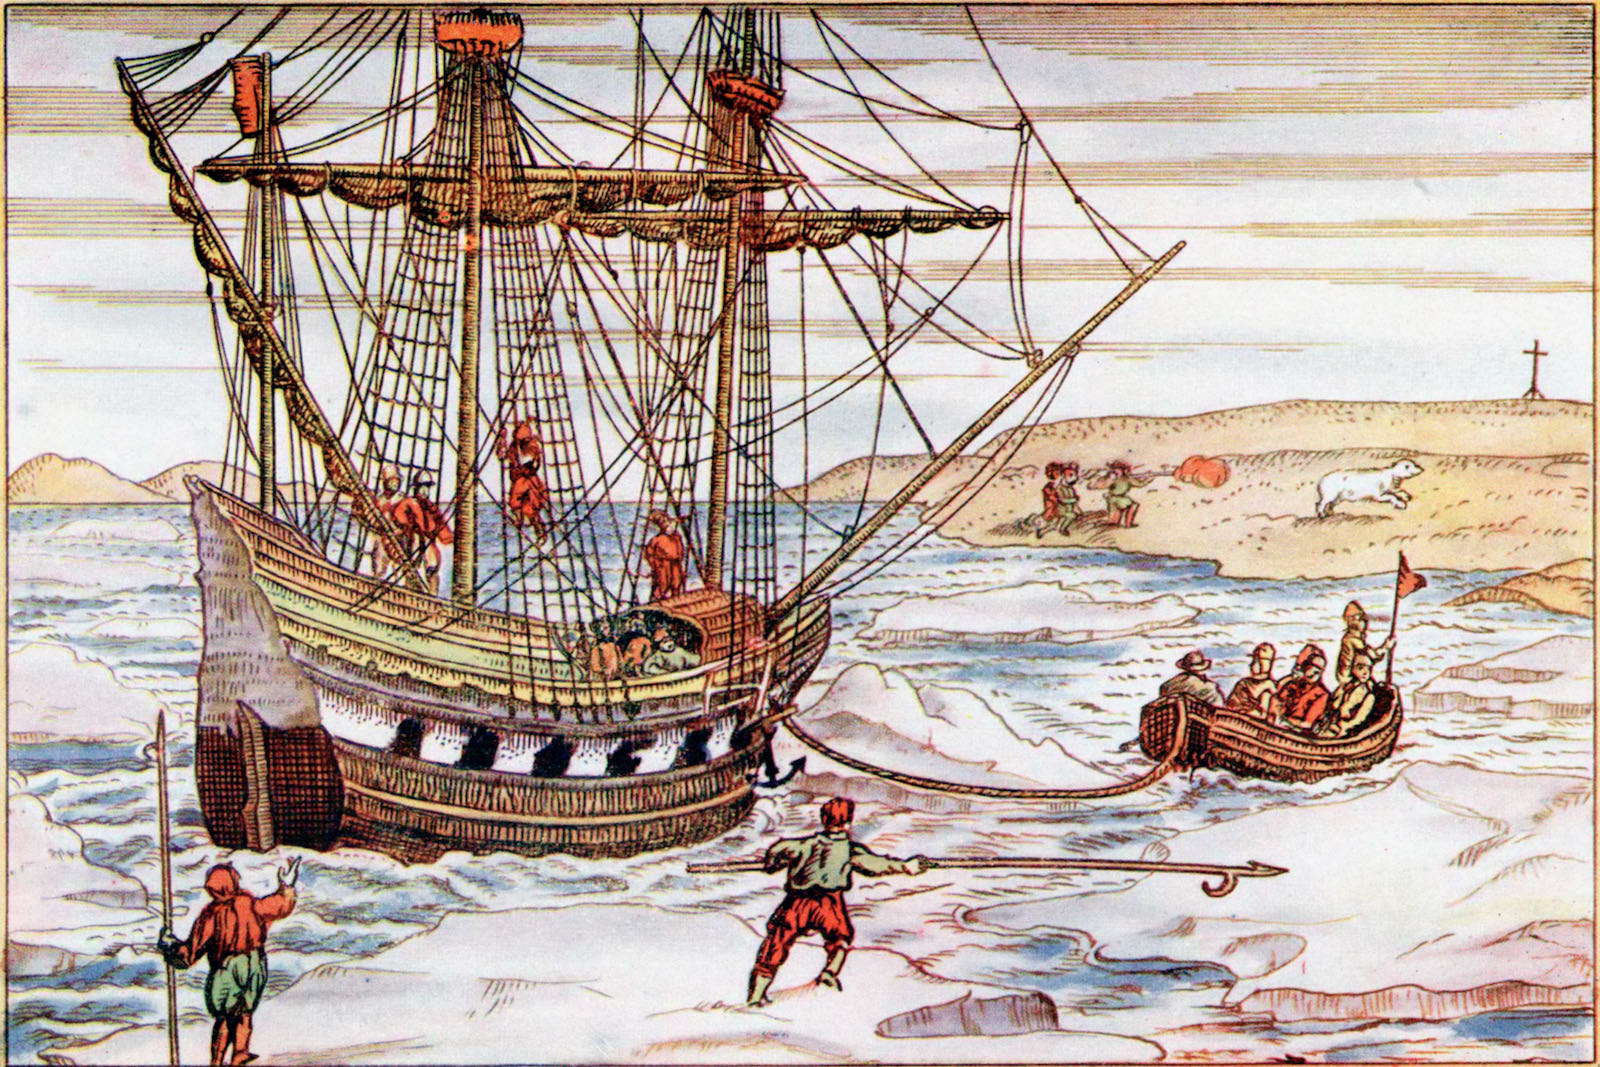 Barents's ship in sea ice